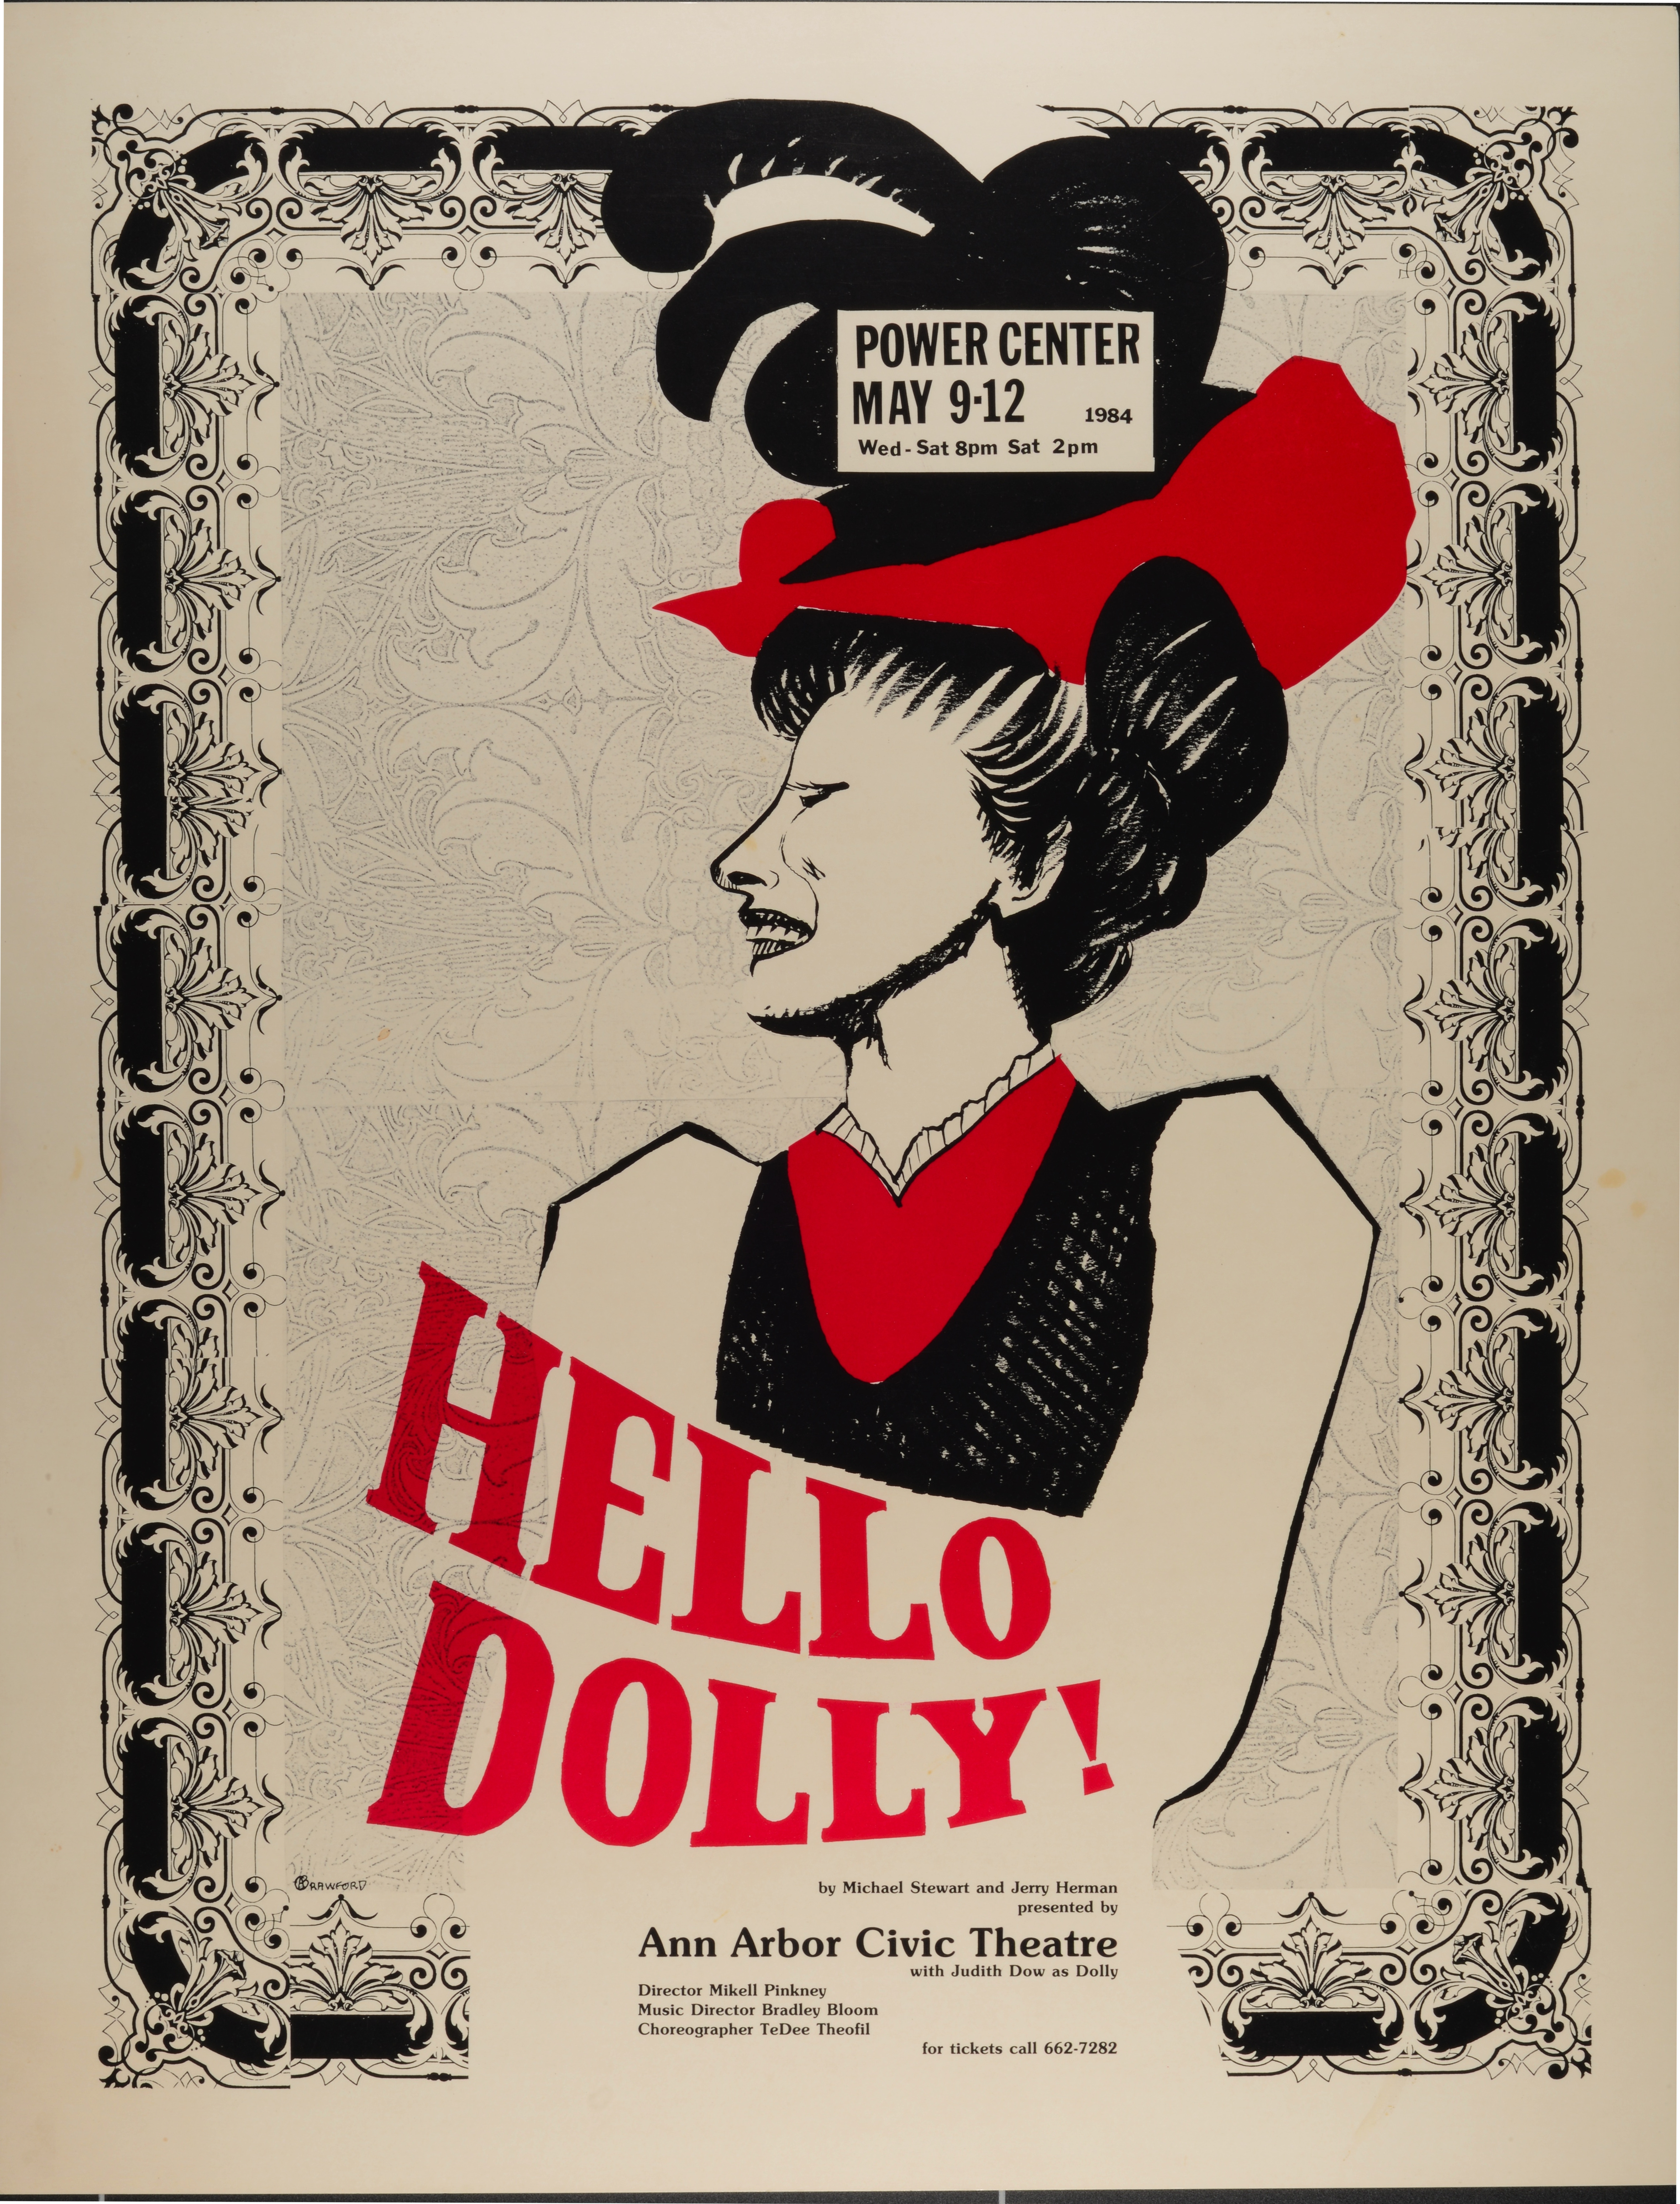 Ann Arbor Civic Theatre Poster: Hello, Dolly! image